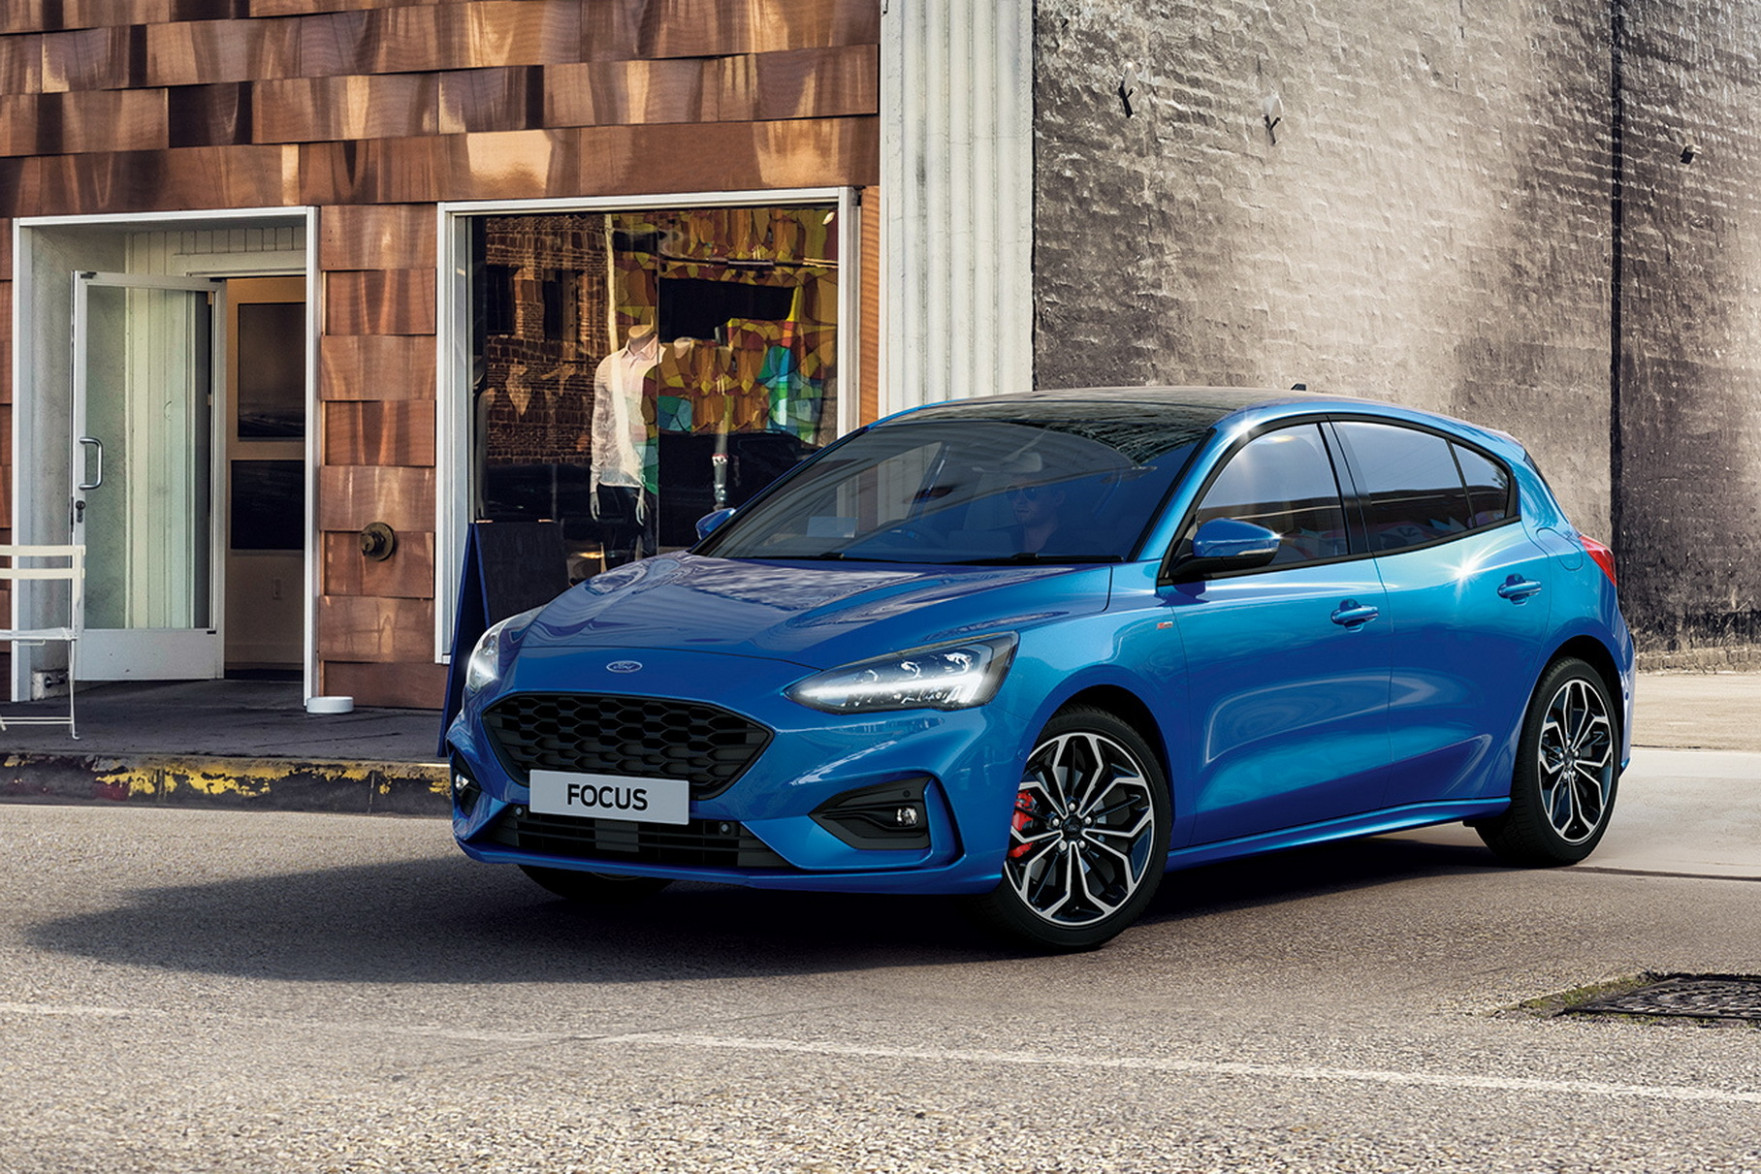 Exterior and Interior 2022 Ford Fiesta St Rs